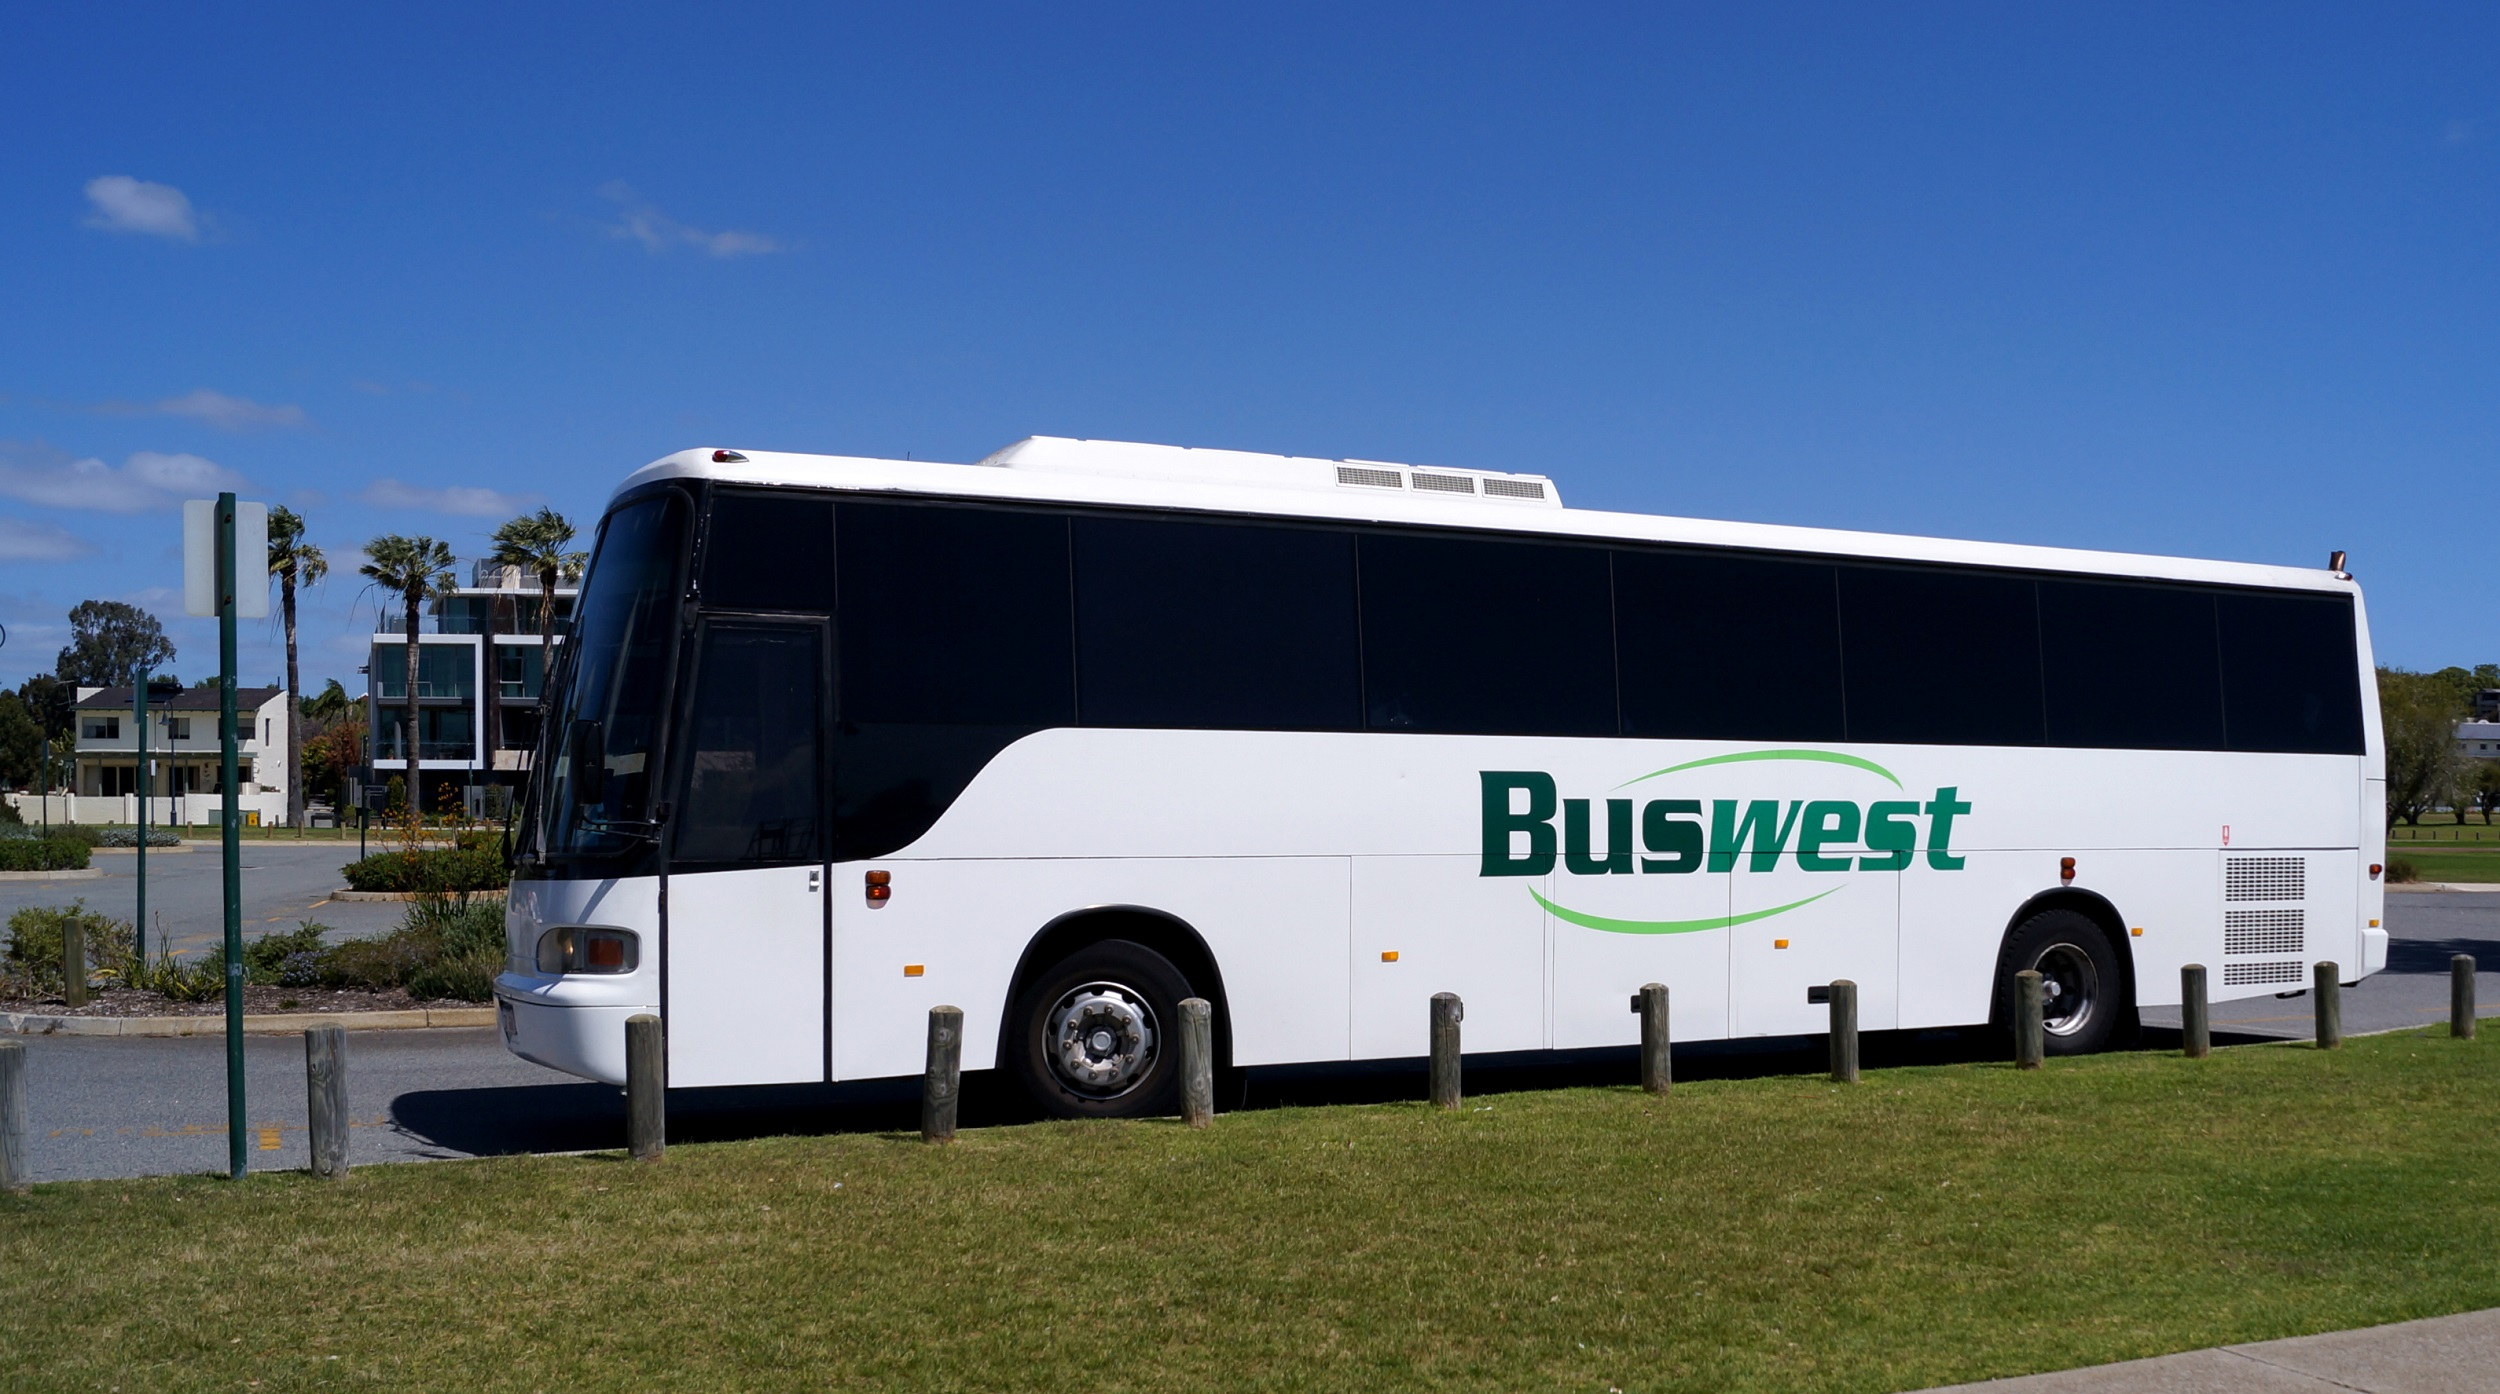 School bus from Buswest